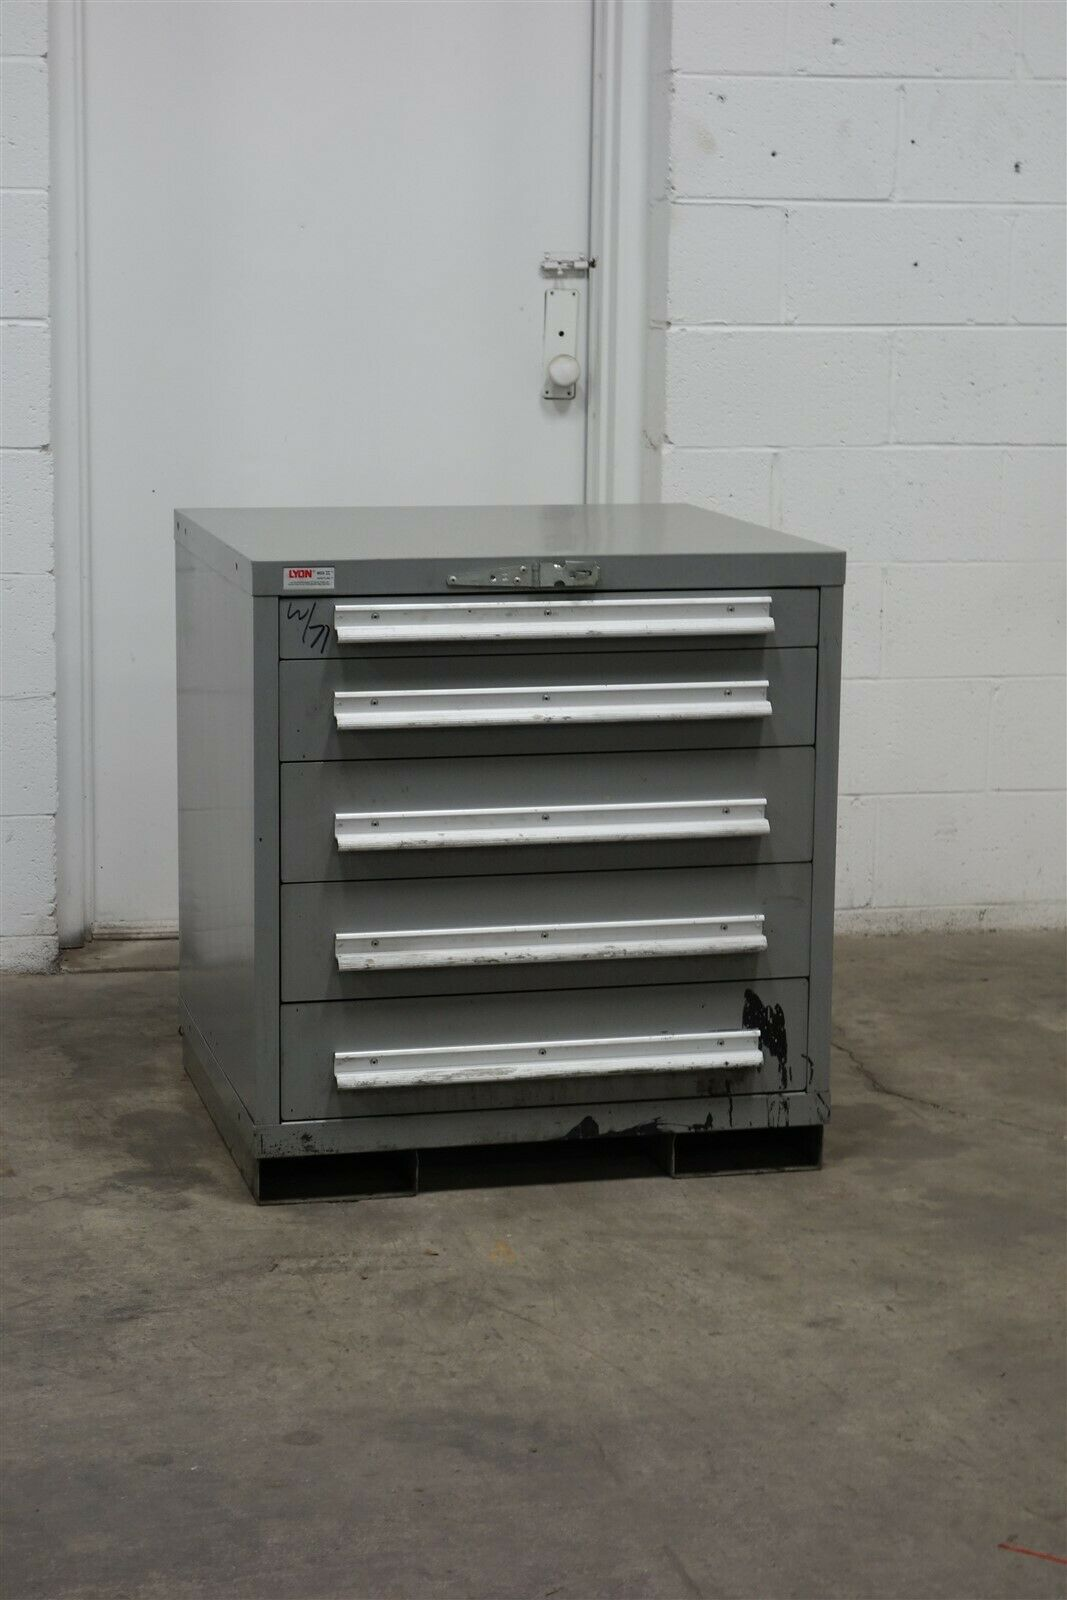 Used Lyon 5 Drawer Cabinet 33 Inch High Industrial Tool